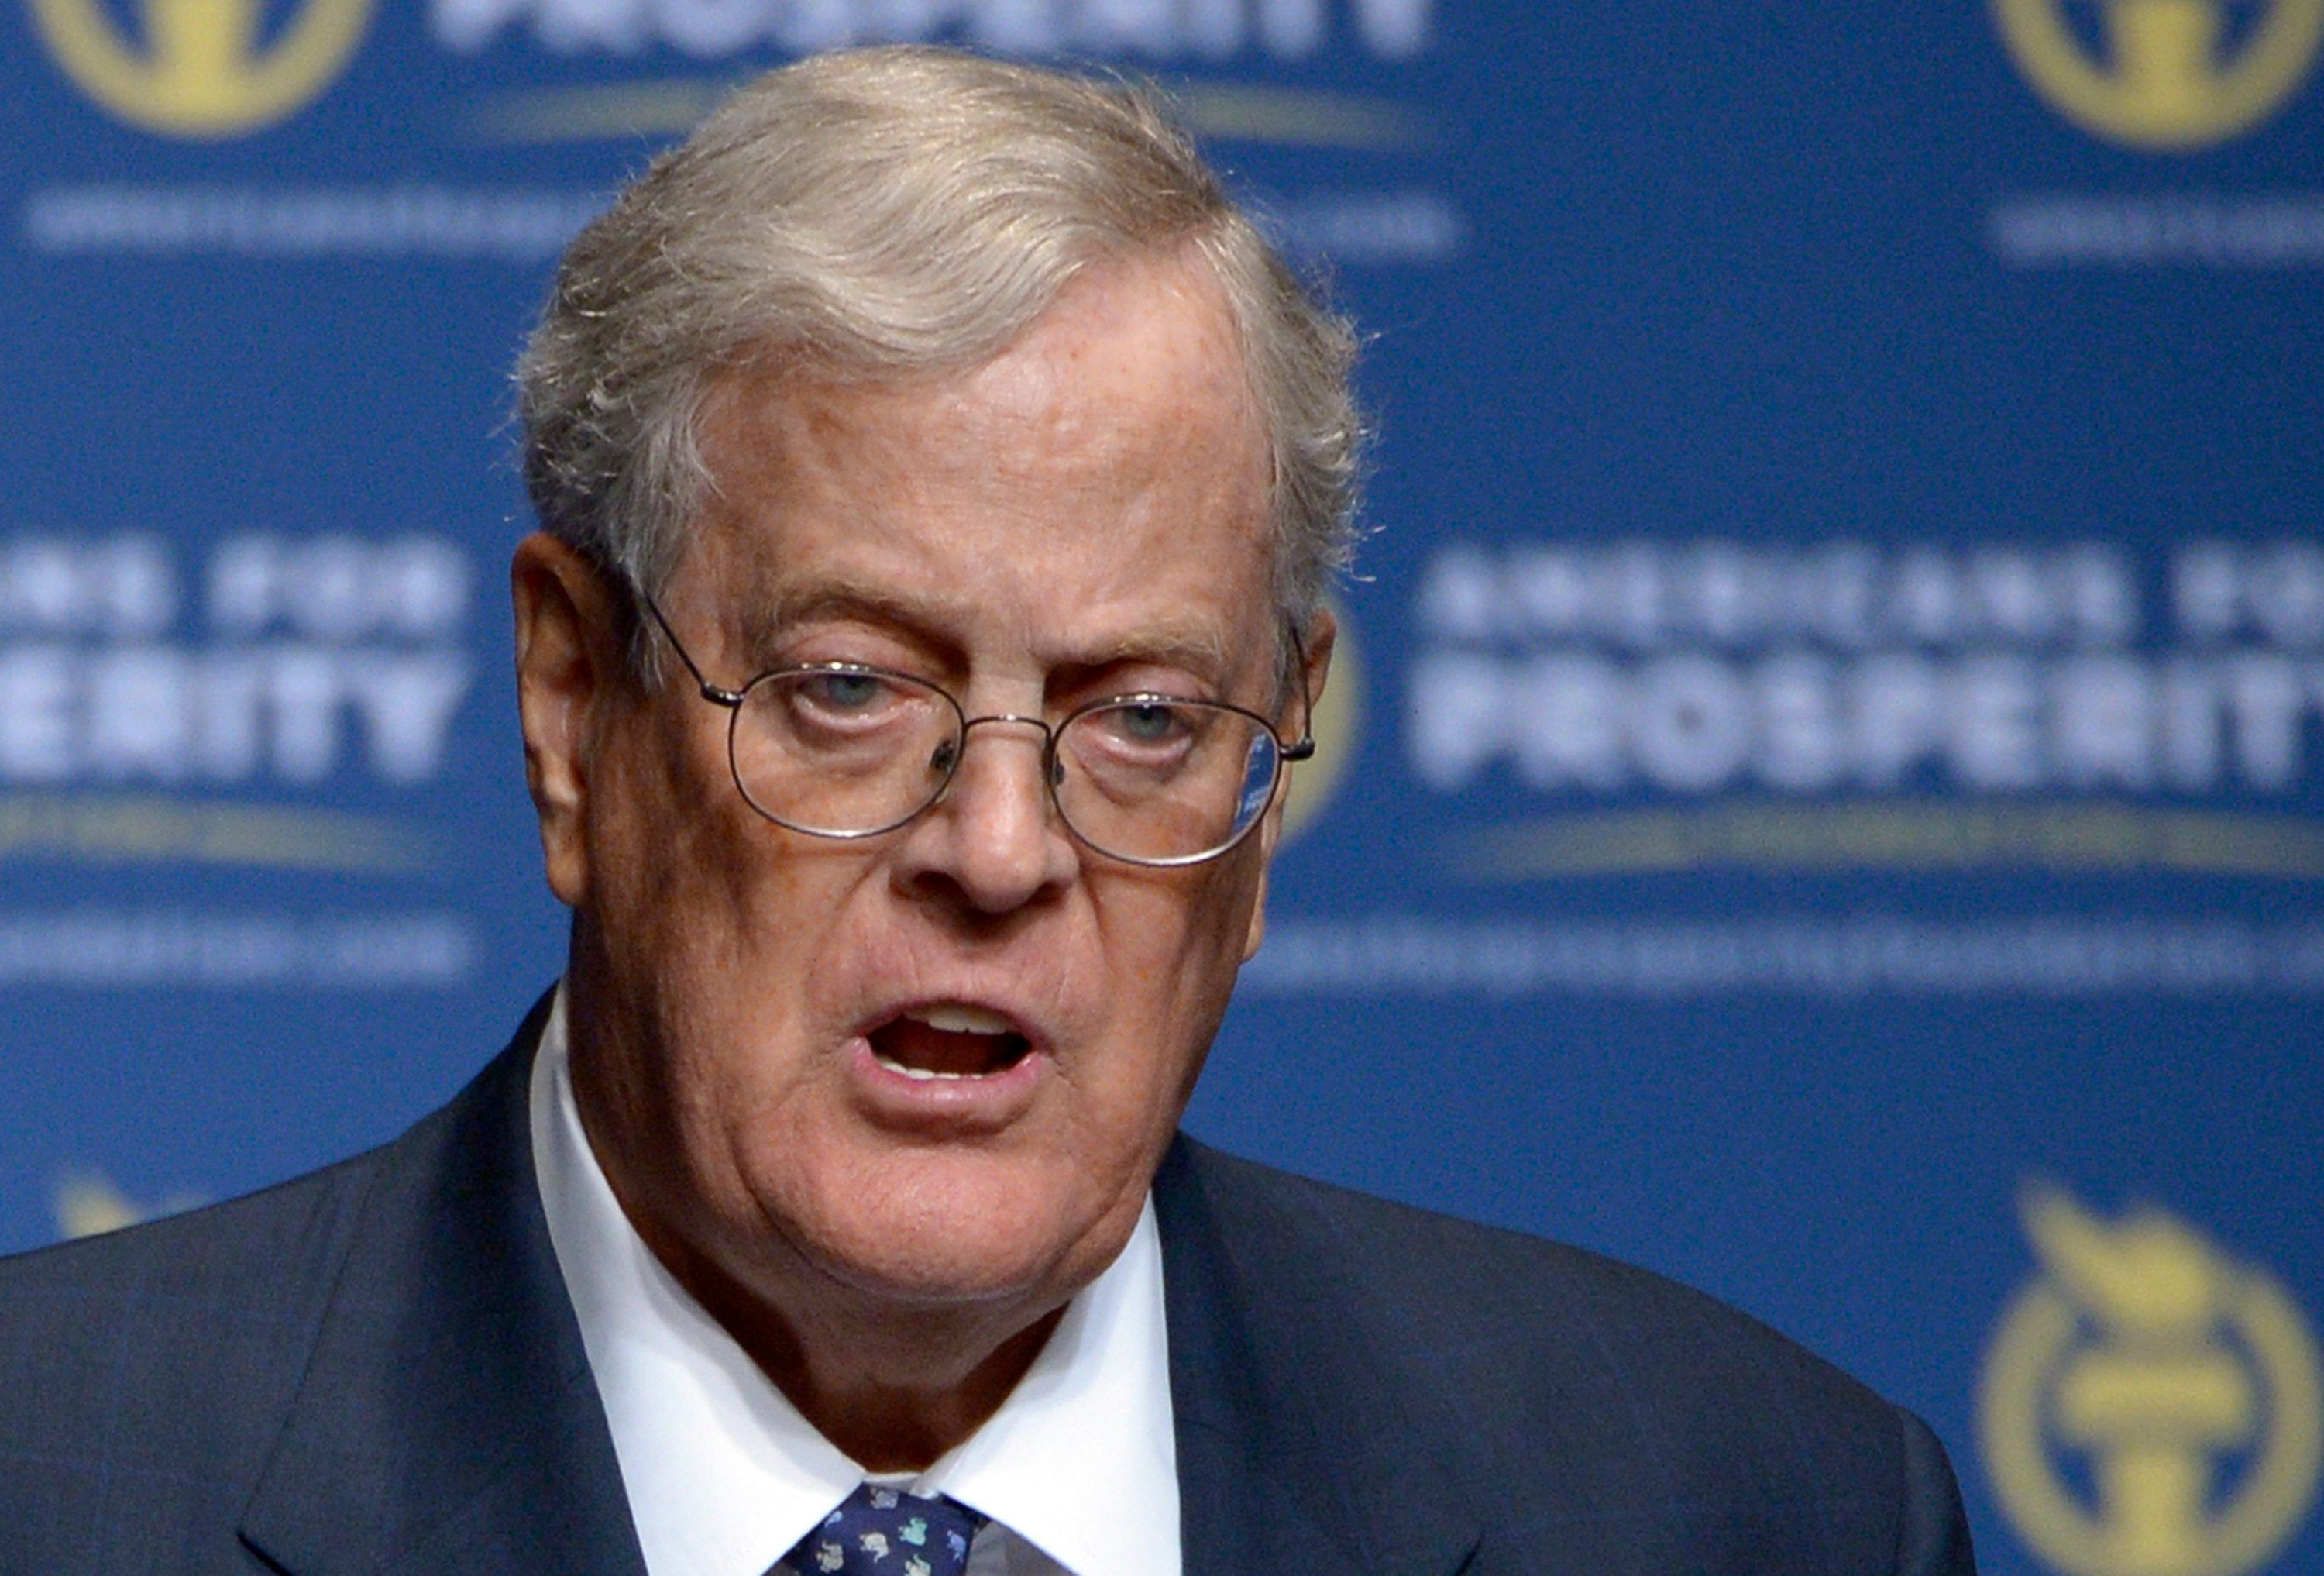 FILE - In this Aug. 30, 2013 file photo, Americans for Prosperity Foundation Chairman David Koch speaks in Orlando, Fla. For as often as Democrats attack the conservative billionaires Charles and David Koch for their heavy spending on politics, it's actually the liberal-minded who shelled out the most cash on the just completed midterm elections. (AP Photo/Phelan M. Ebenhack, File)